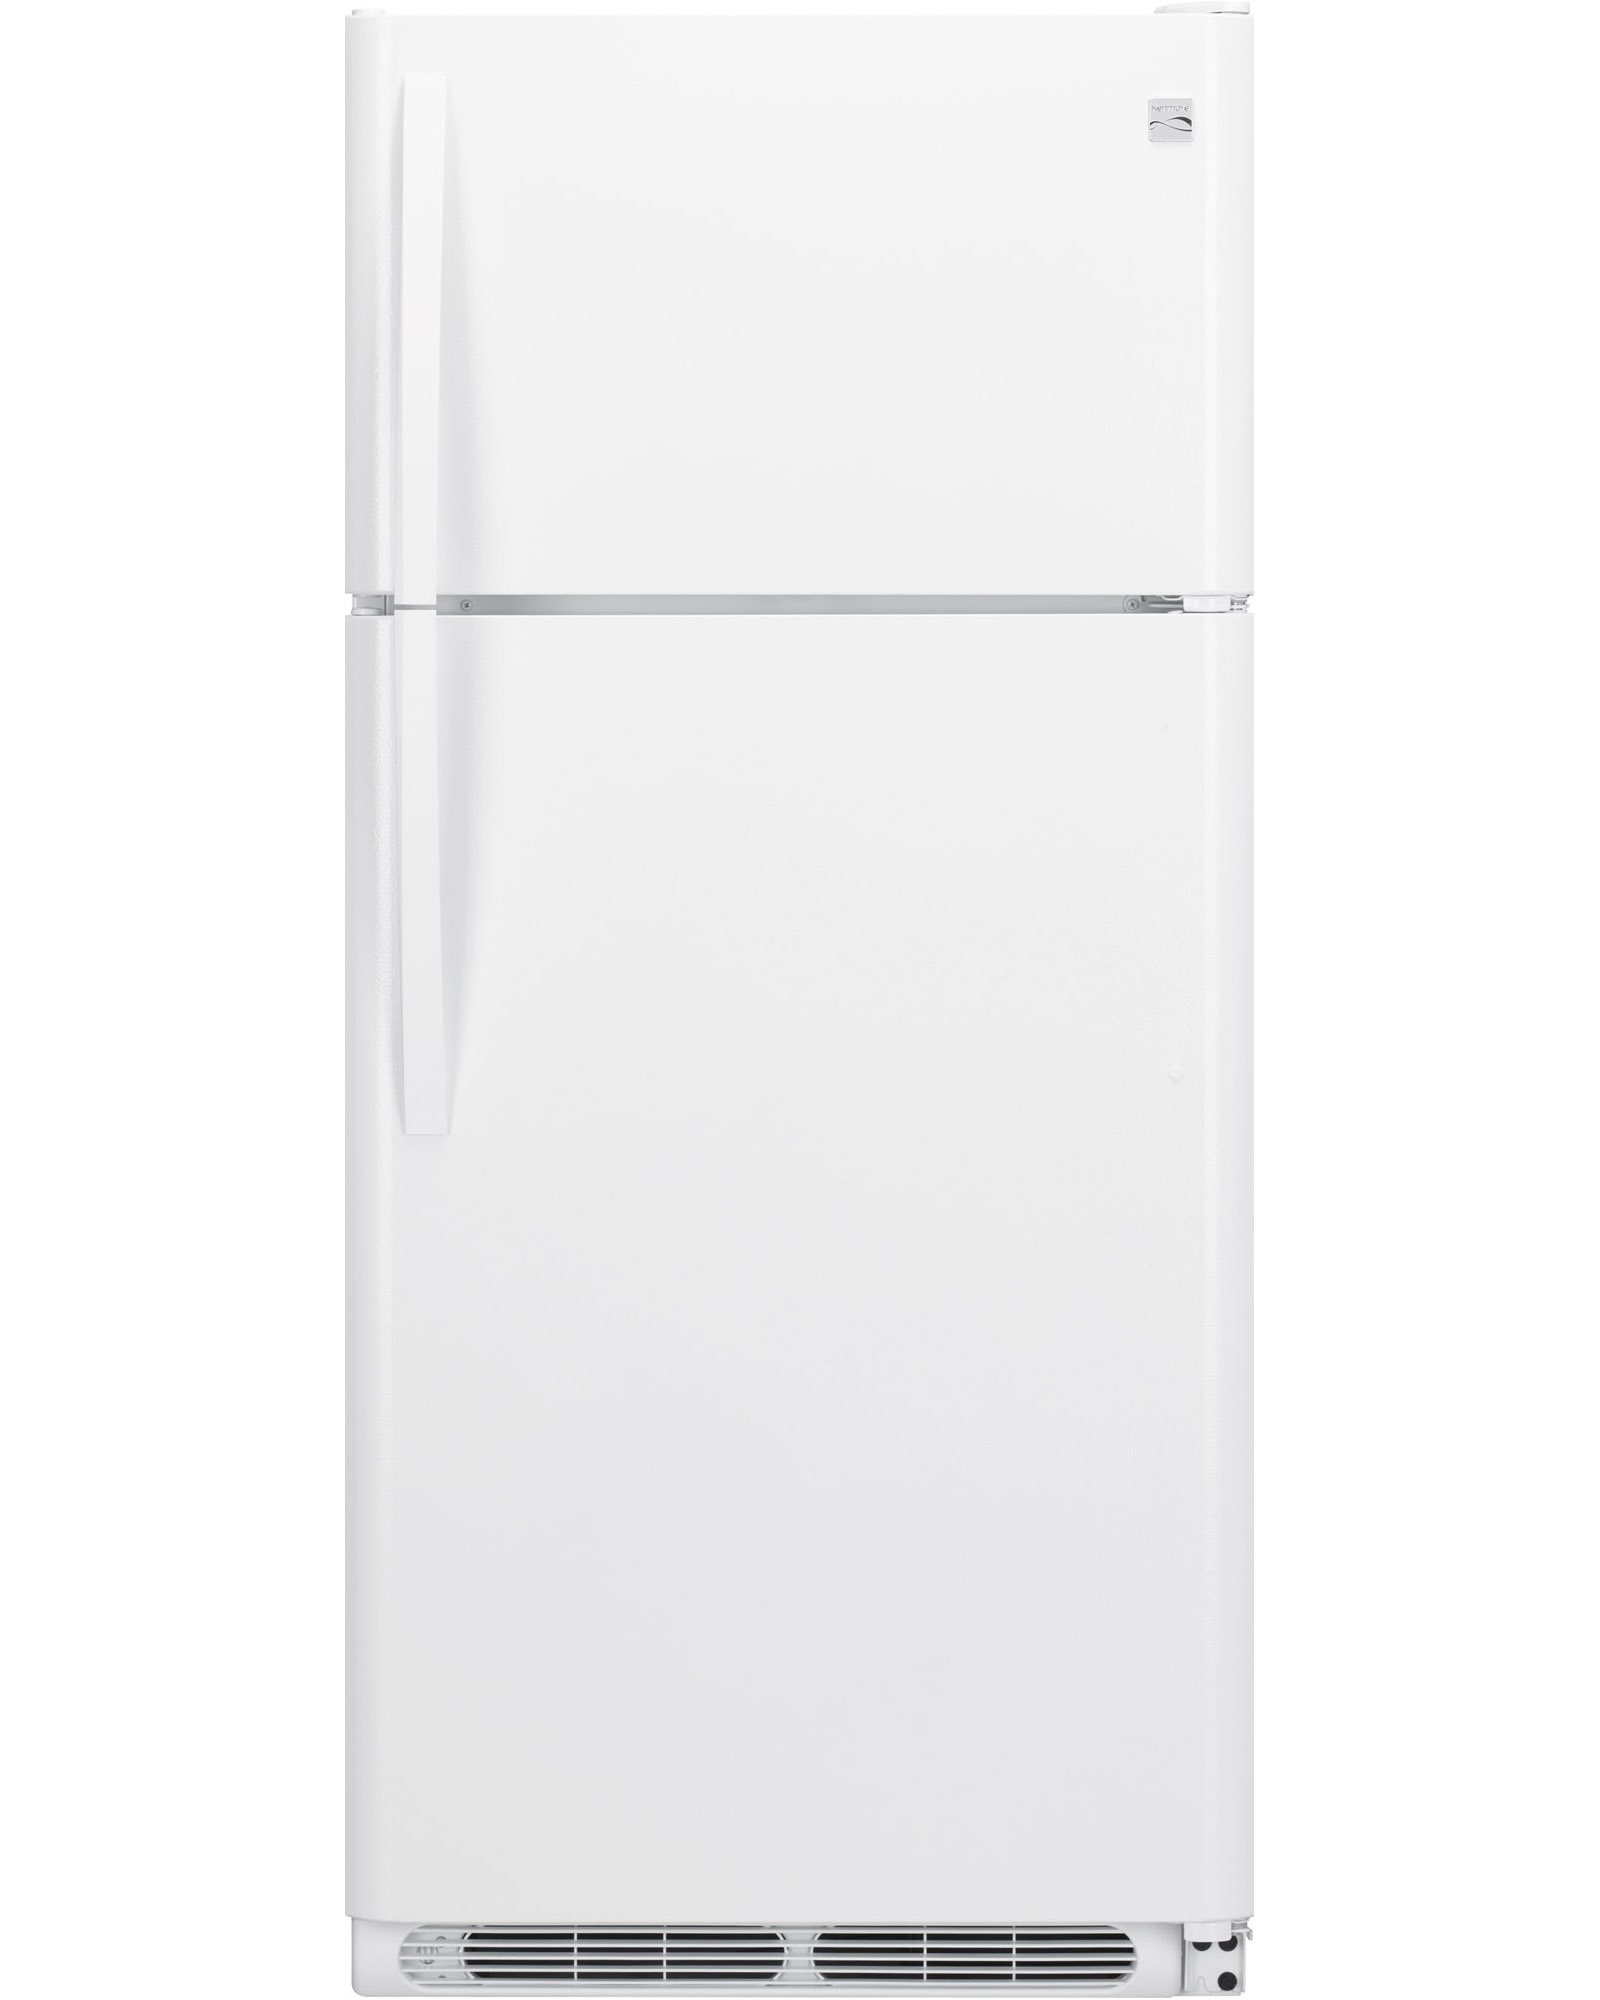 60412-18-cu-ft-Top-Freezer-Refrigerator-w-Wire-Shelves-White